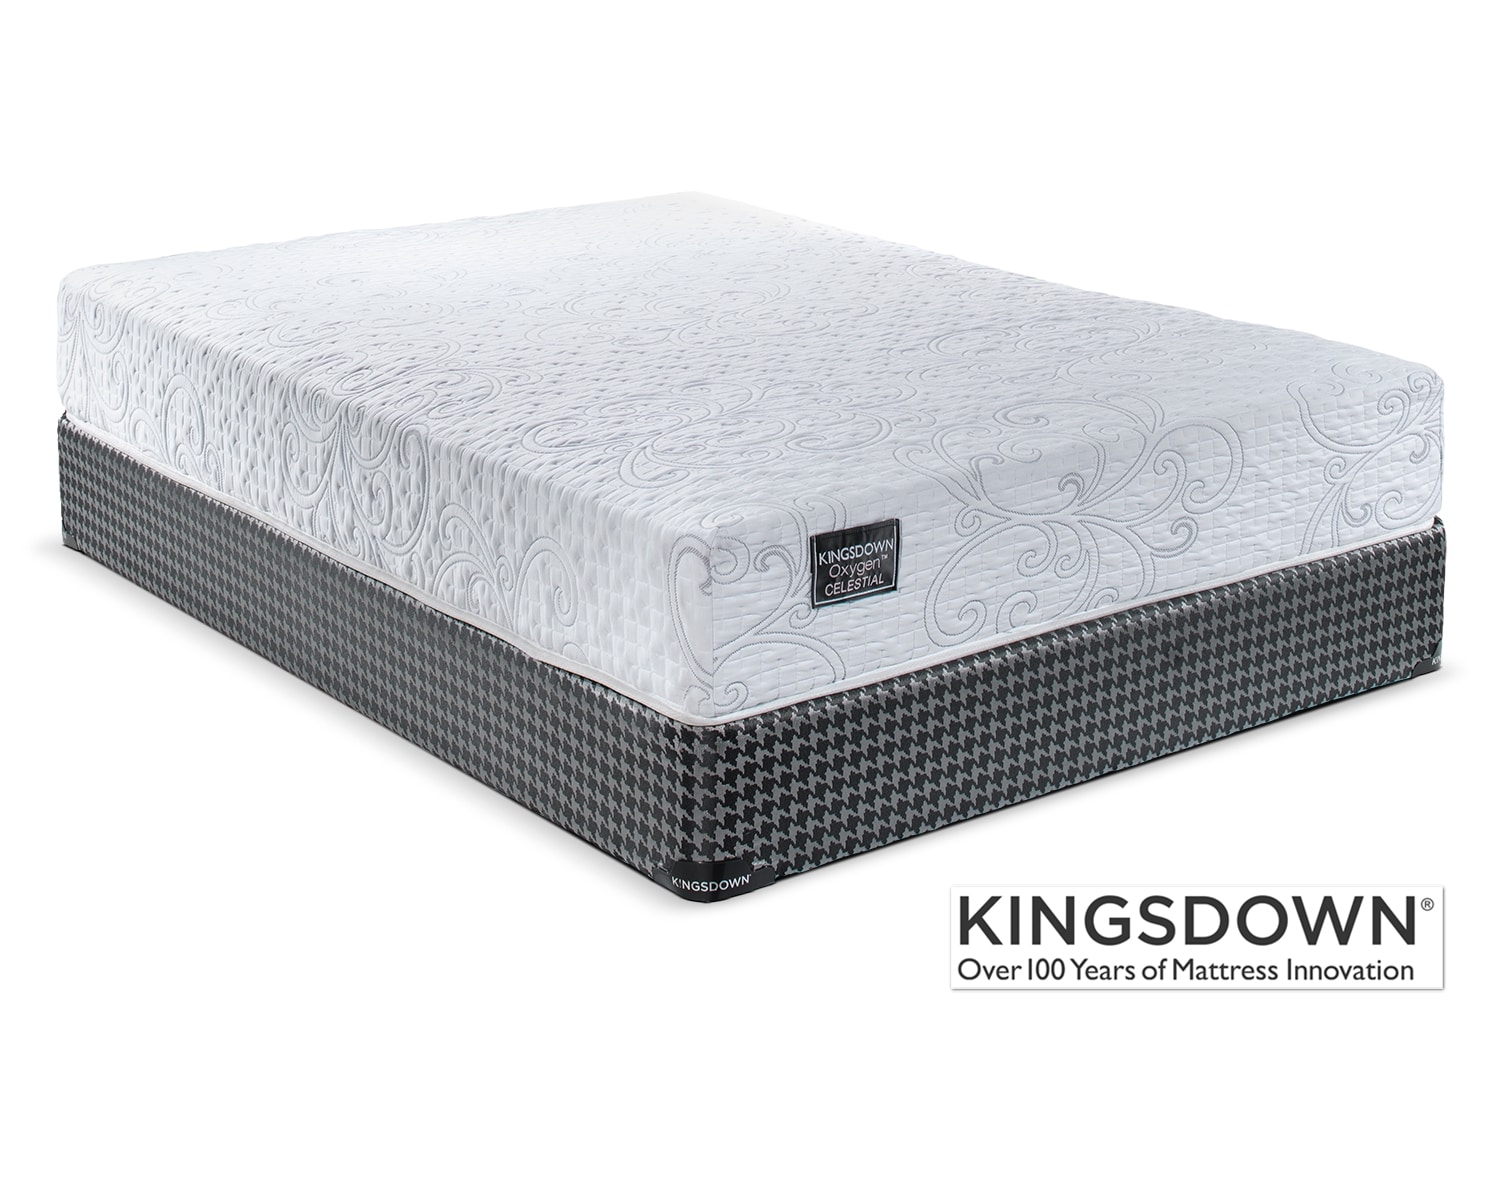 Kingsdown Celestial Mattress Collection